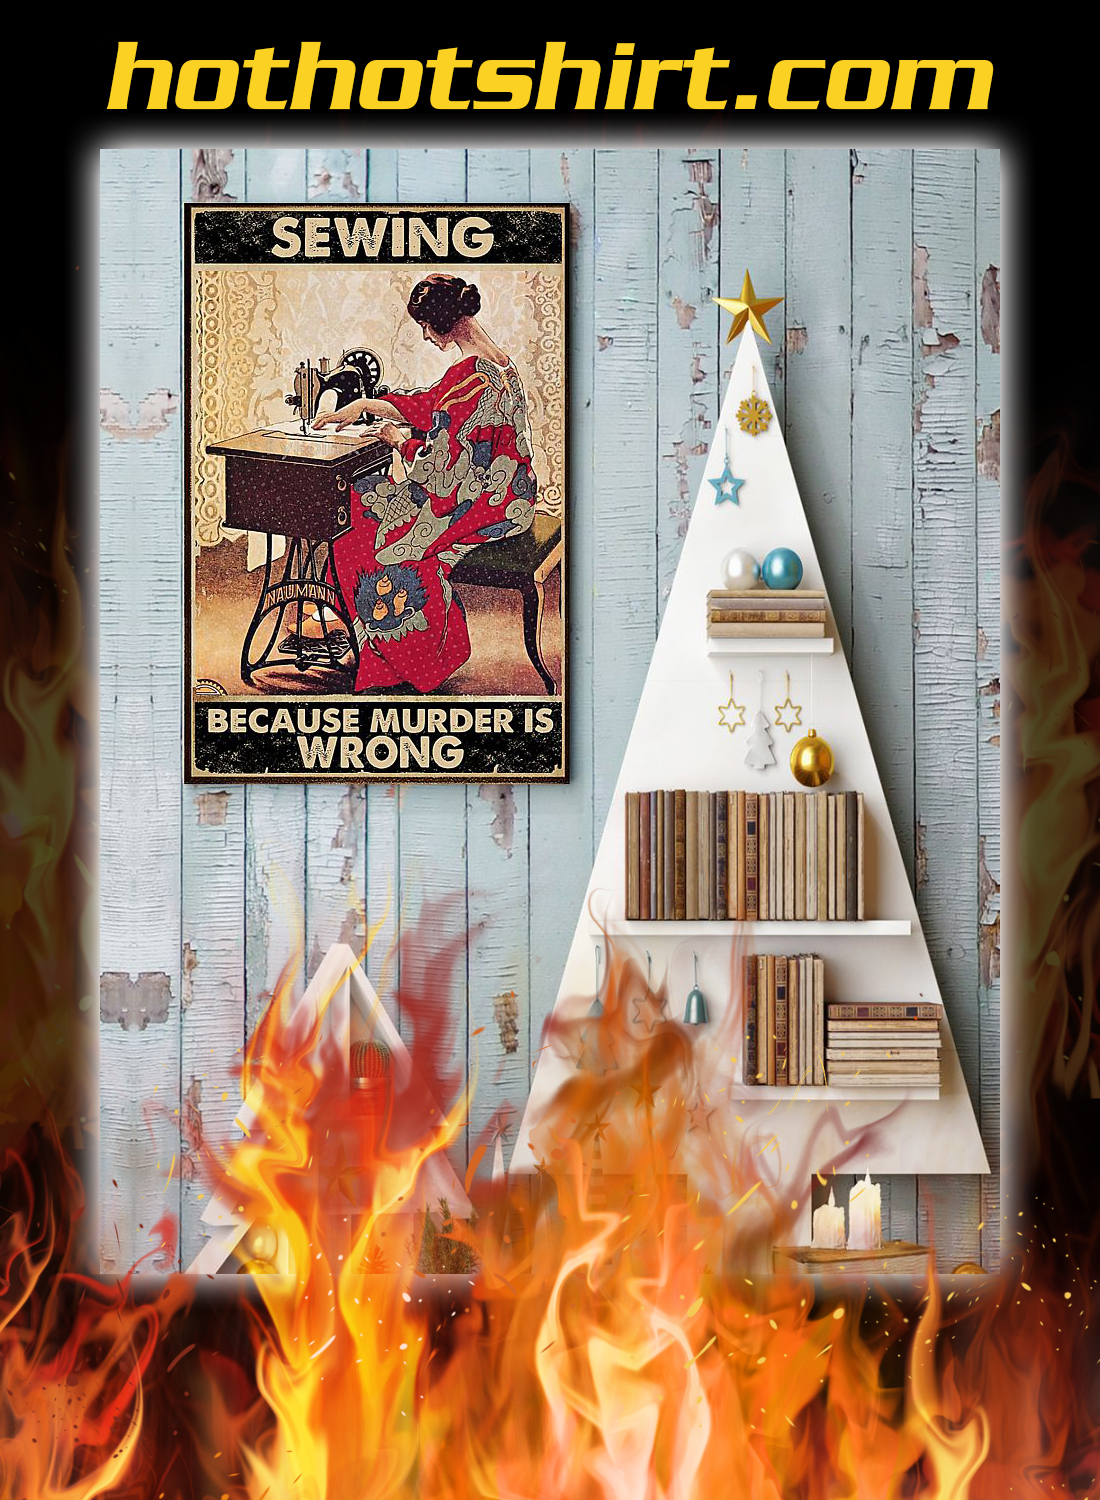 Sewing because murder is wrong poster 1